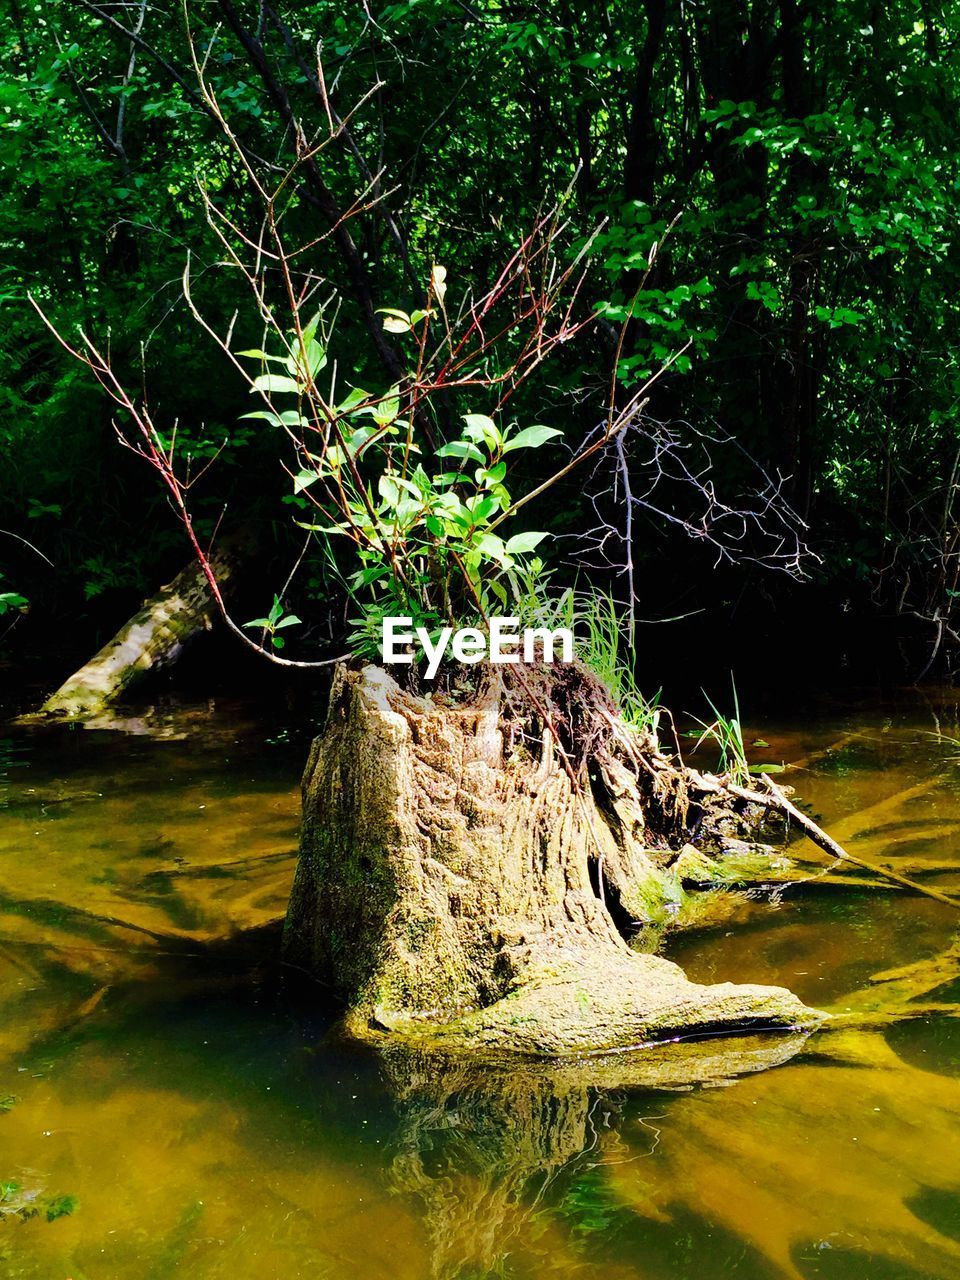 water, nature, no people, tree, tranquility, outdoors, day, lake, animals in the wild, forest, one animal, beauty in nature, animal themes, grass, dead tree, close-up